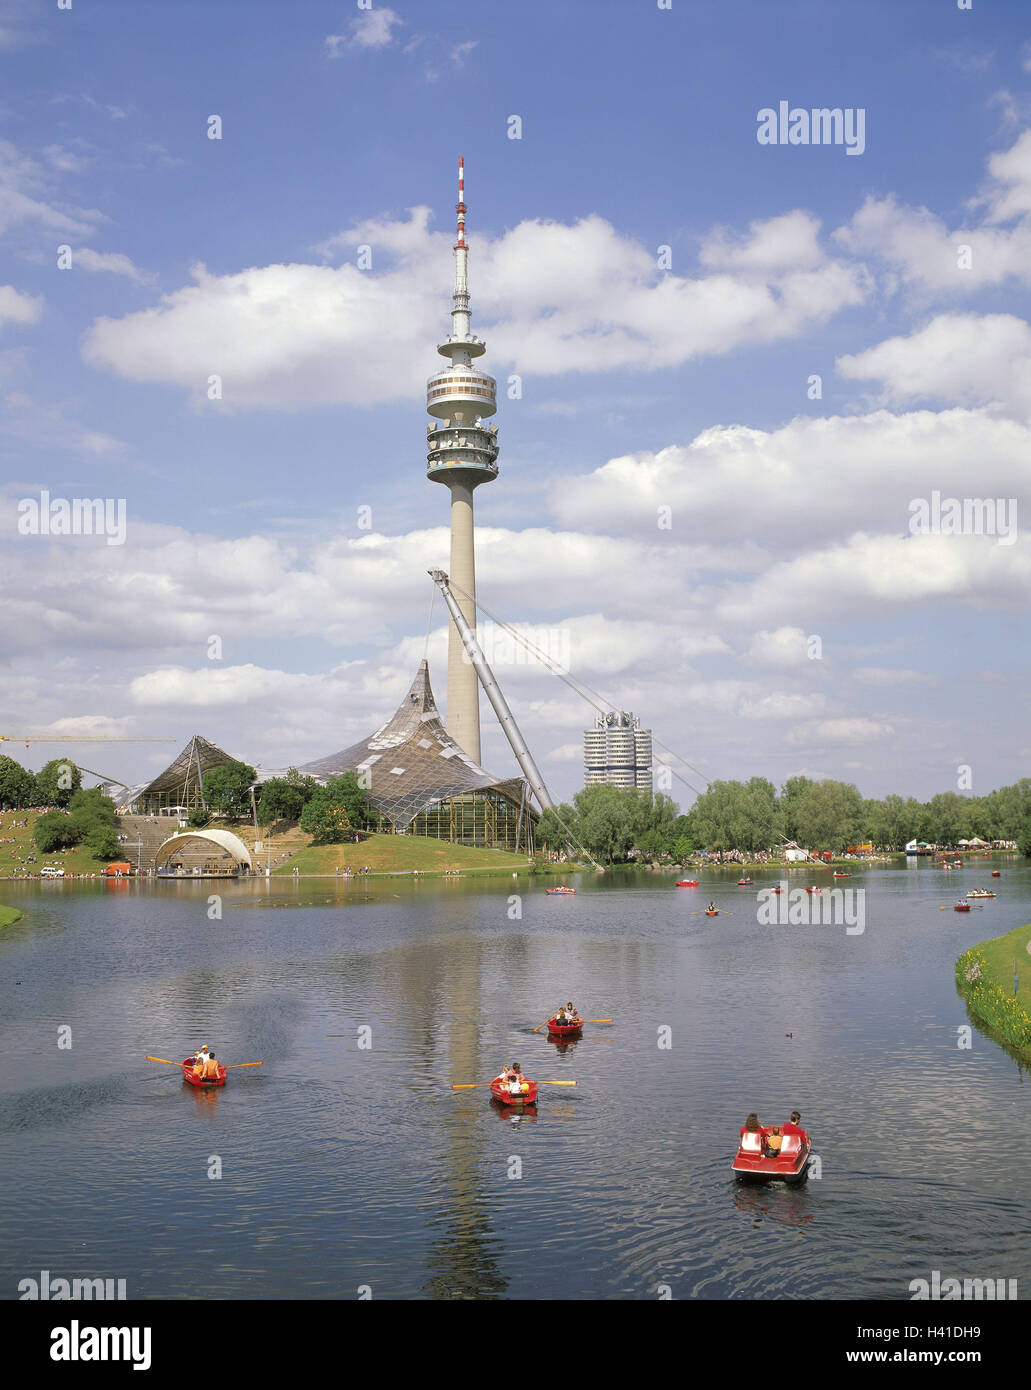 Germany Upper Bavaria Munich Olympic Park Swimming Hall Tower 290 M High Lake Oar Boots Summers Europe Town Recreational